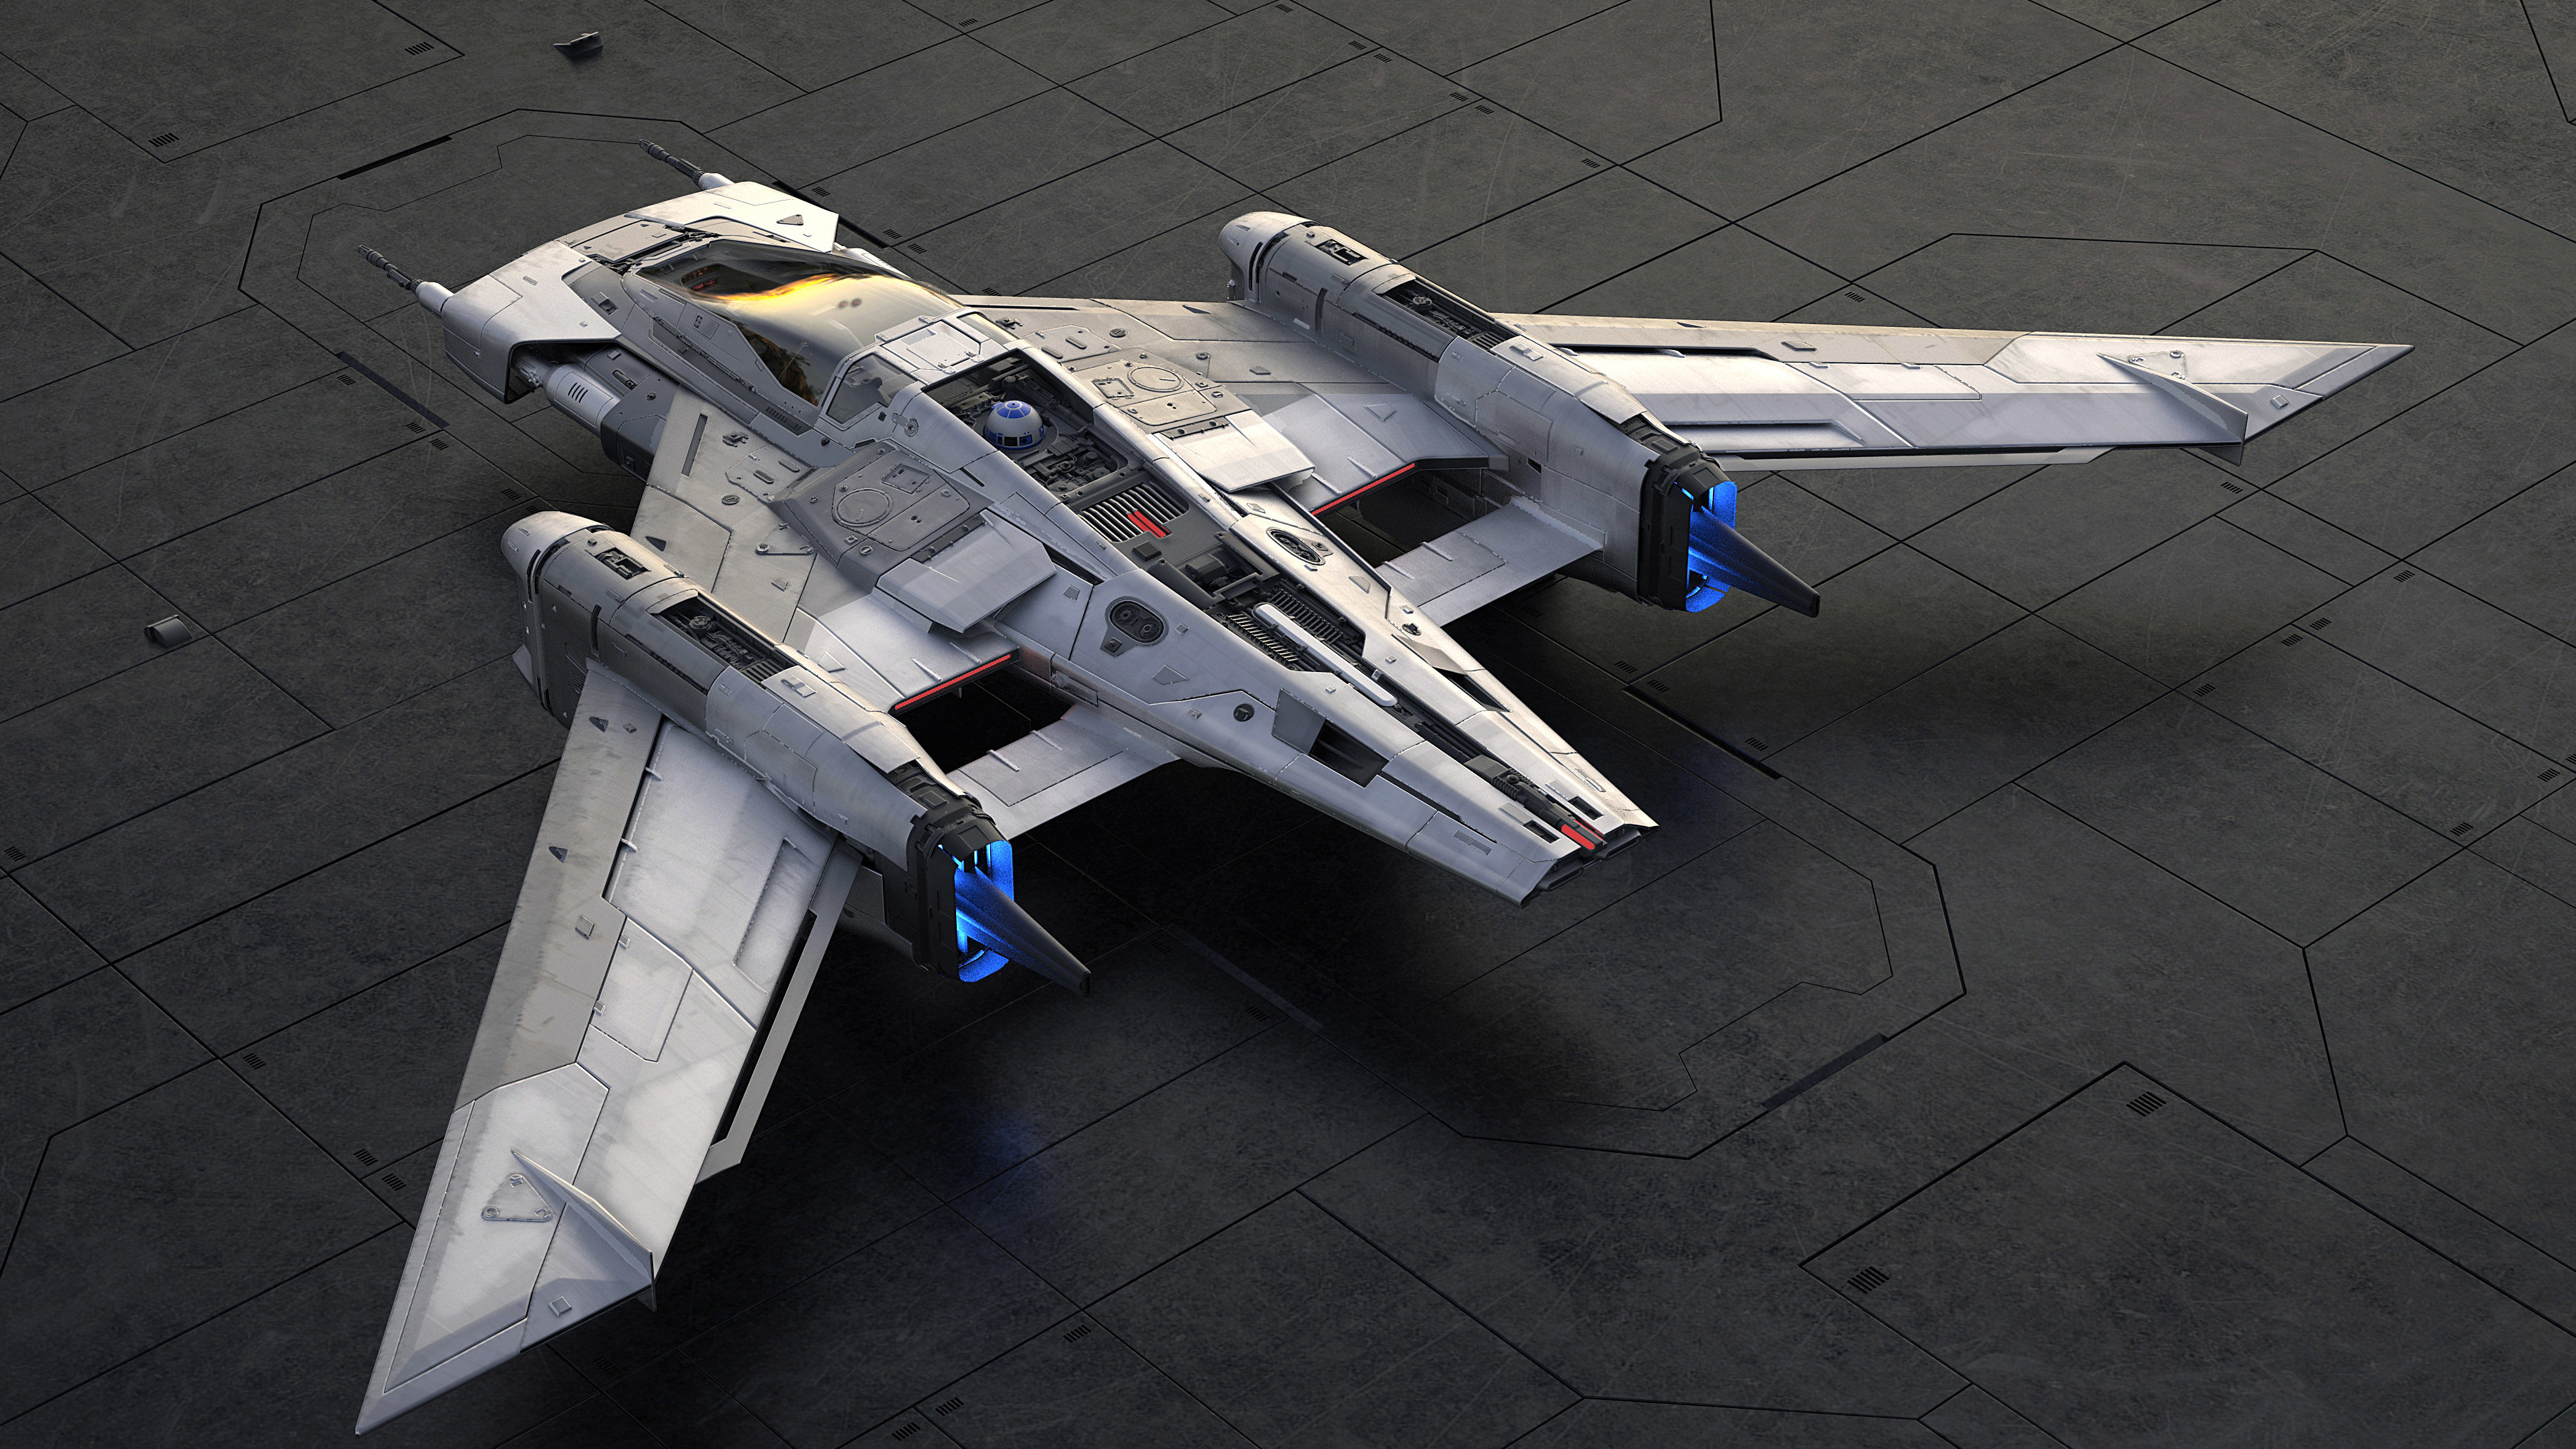 The fantasy starship, named Tri-Wing S-91x Pegasus Starfighter, will be featured as a 5-feet scale model at the film premiere. (Photo courtesy: newsroom.porsche.com)